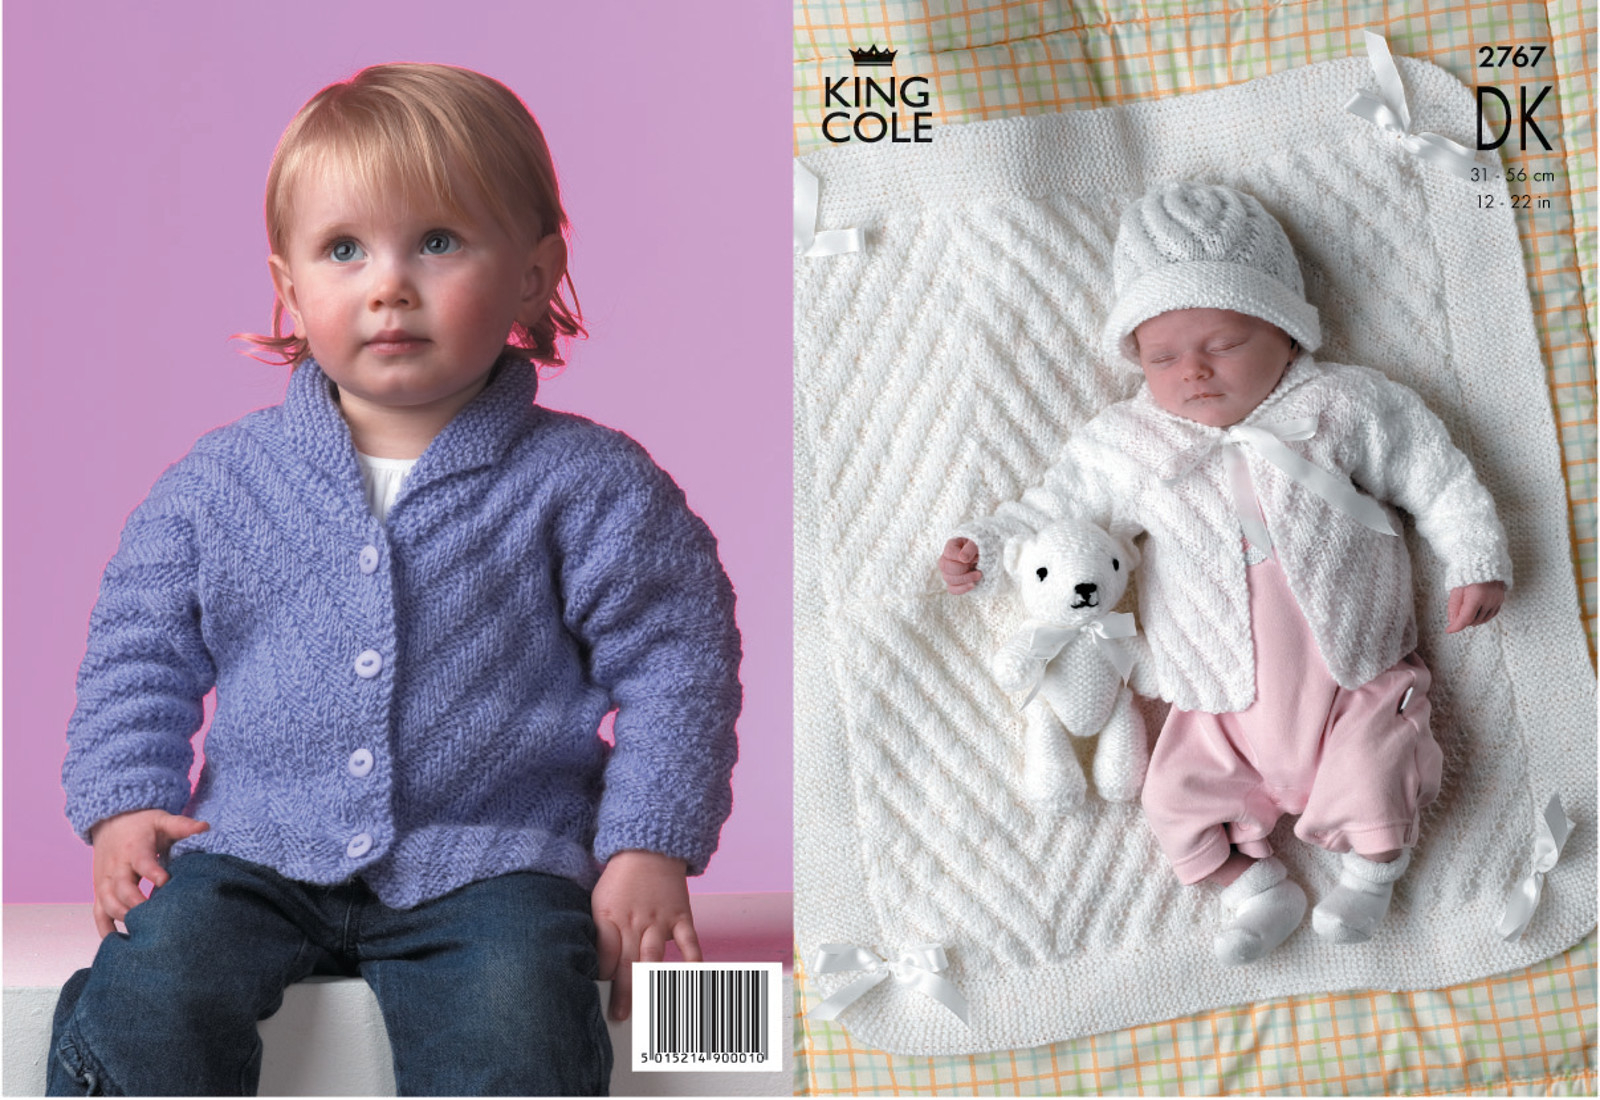 Double Knitting Baby Patterns Details About Ba Dk Double Knitting Pattern King Cole Stripe Effect Jacket Hat Blanket 2767